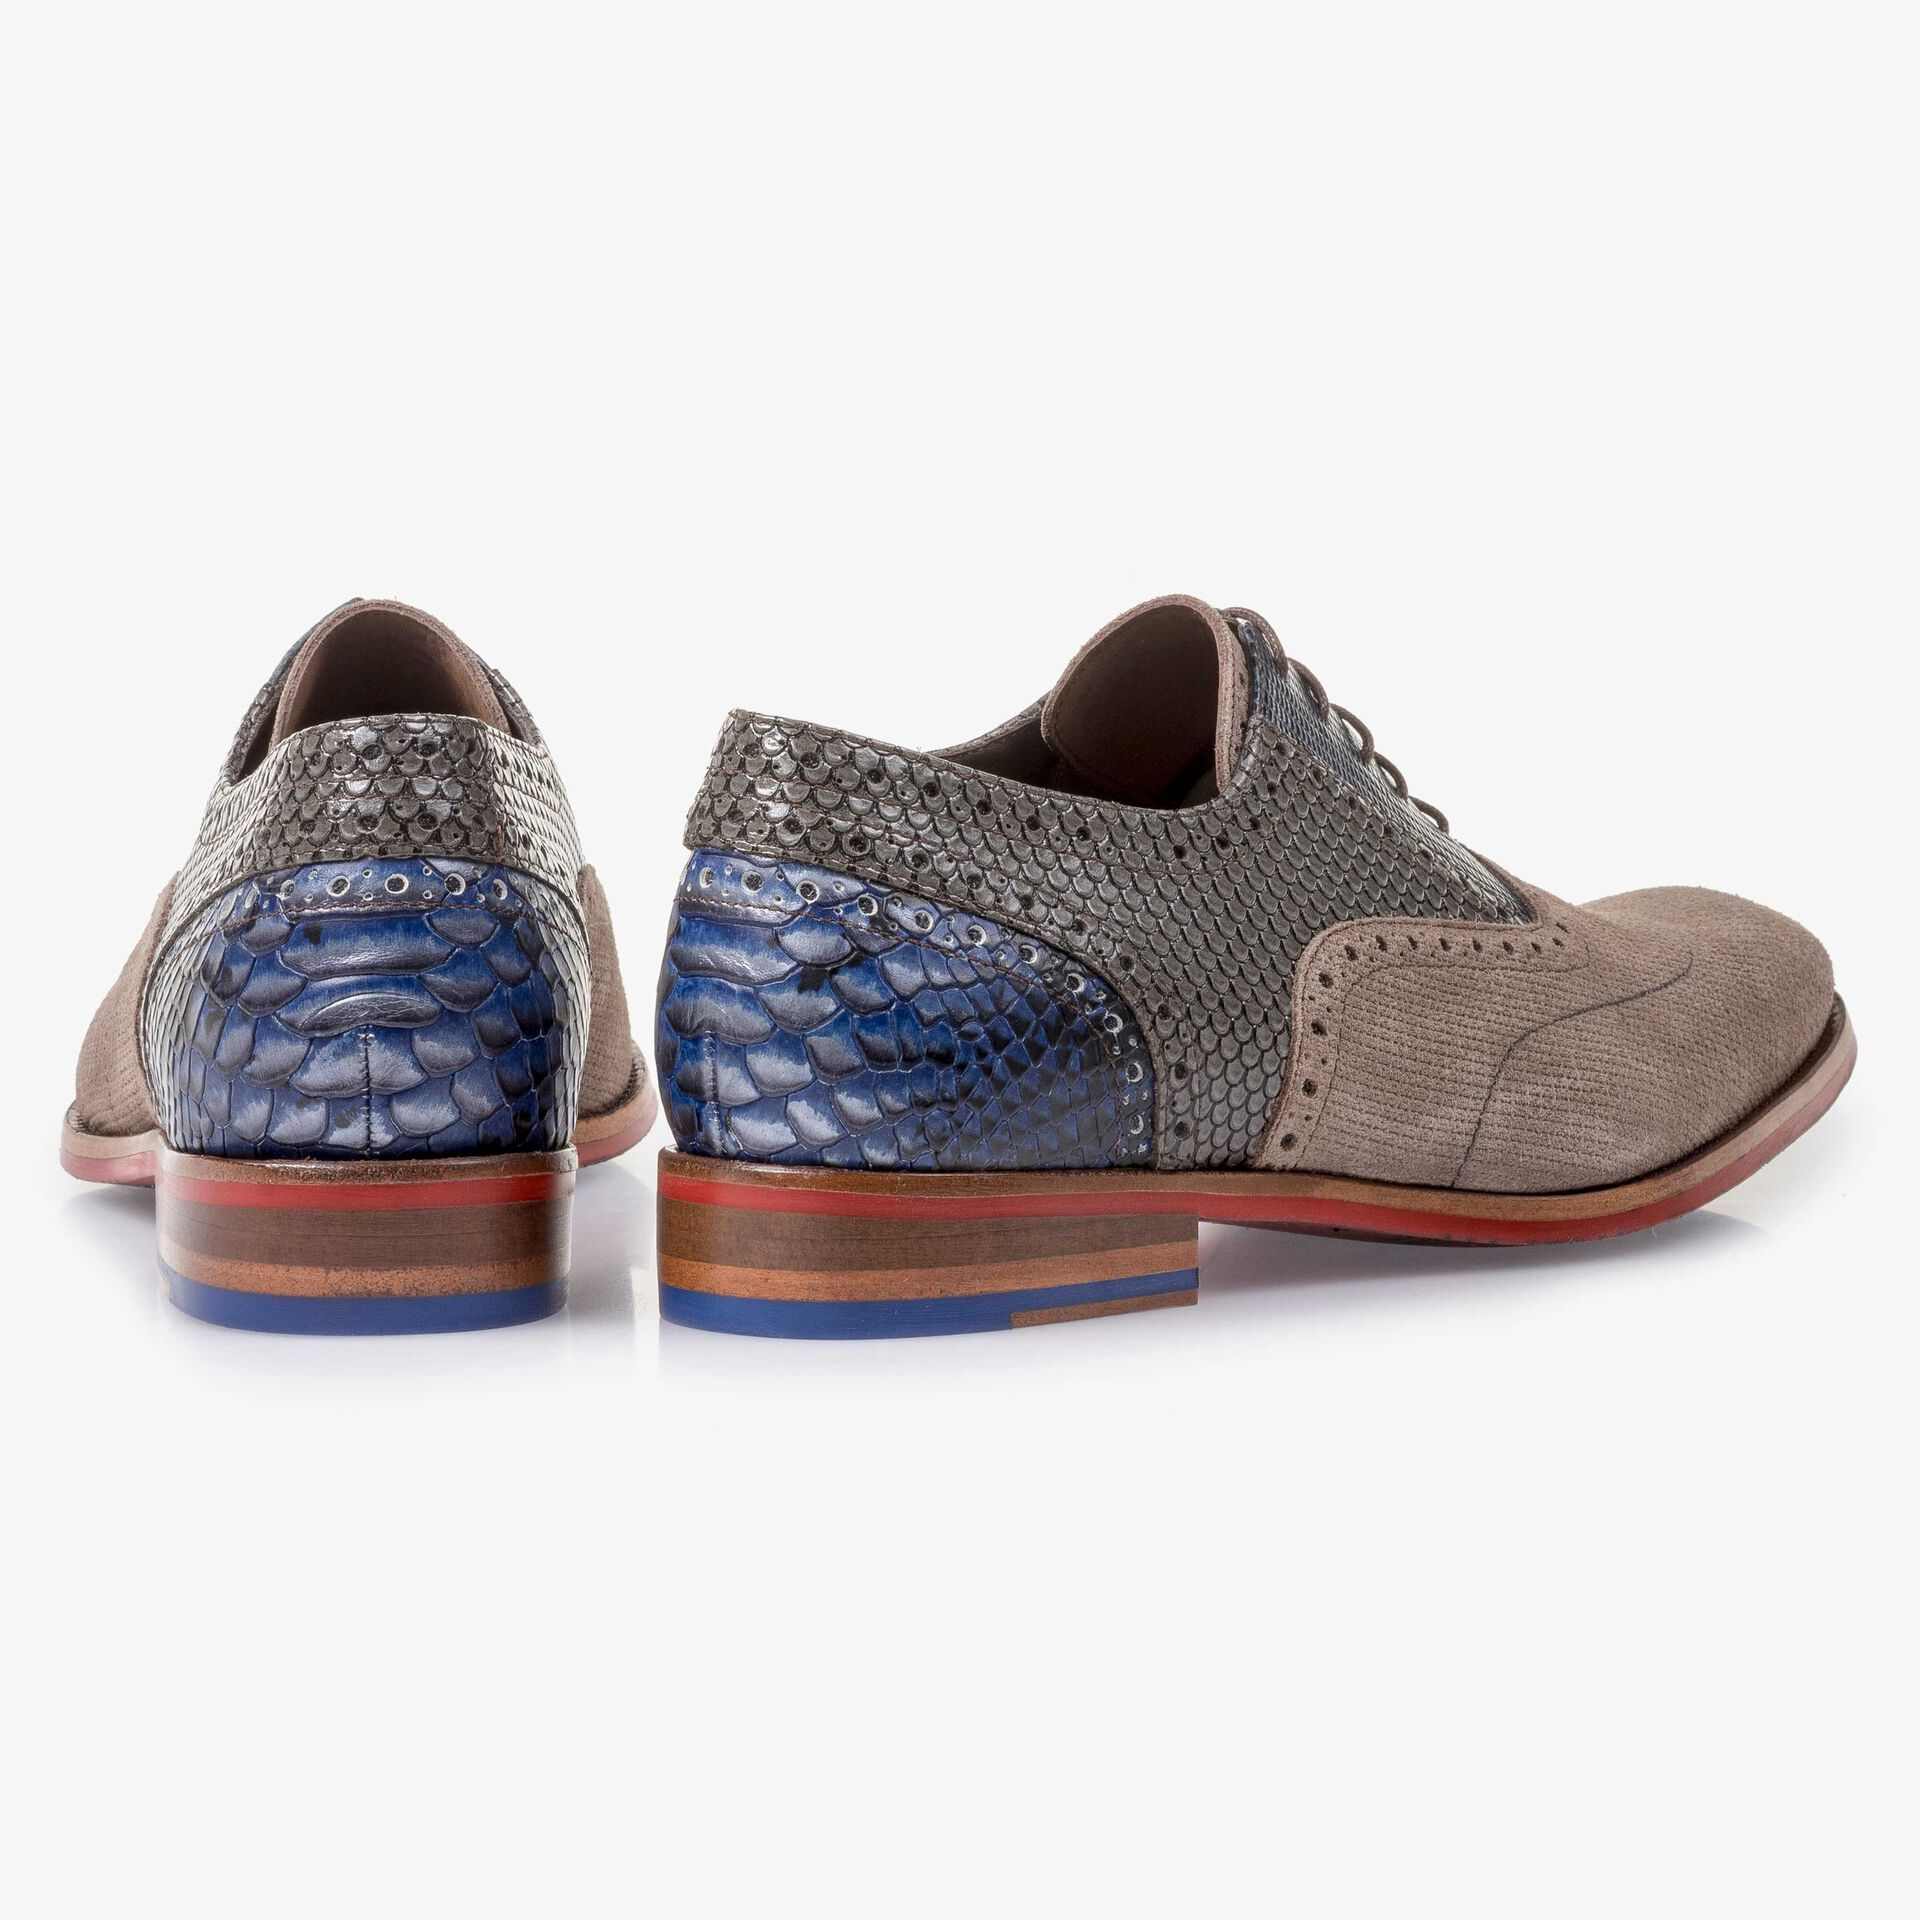 Suede leather lace shoe with pattern taupe